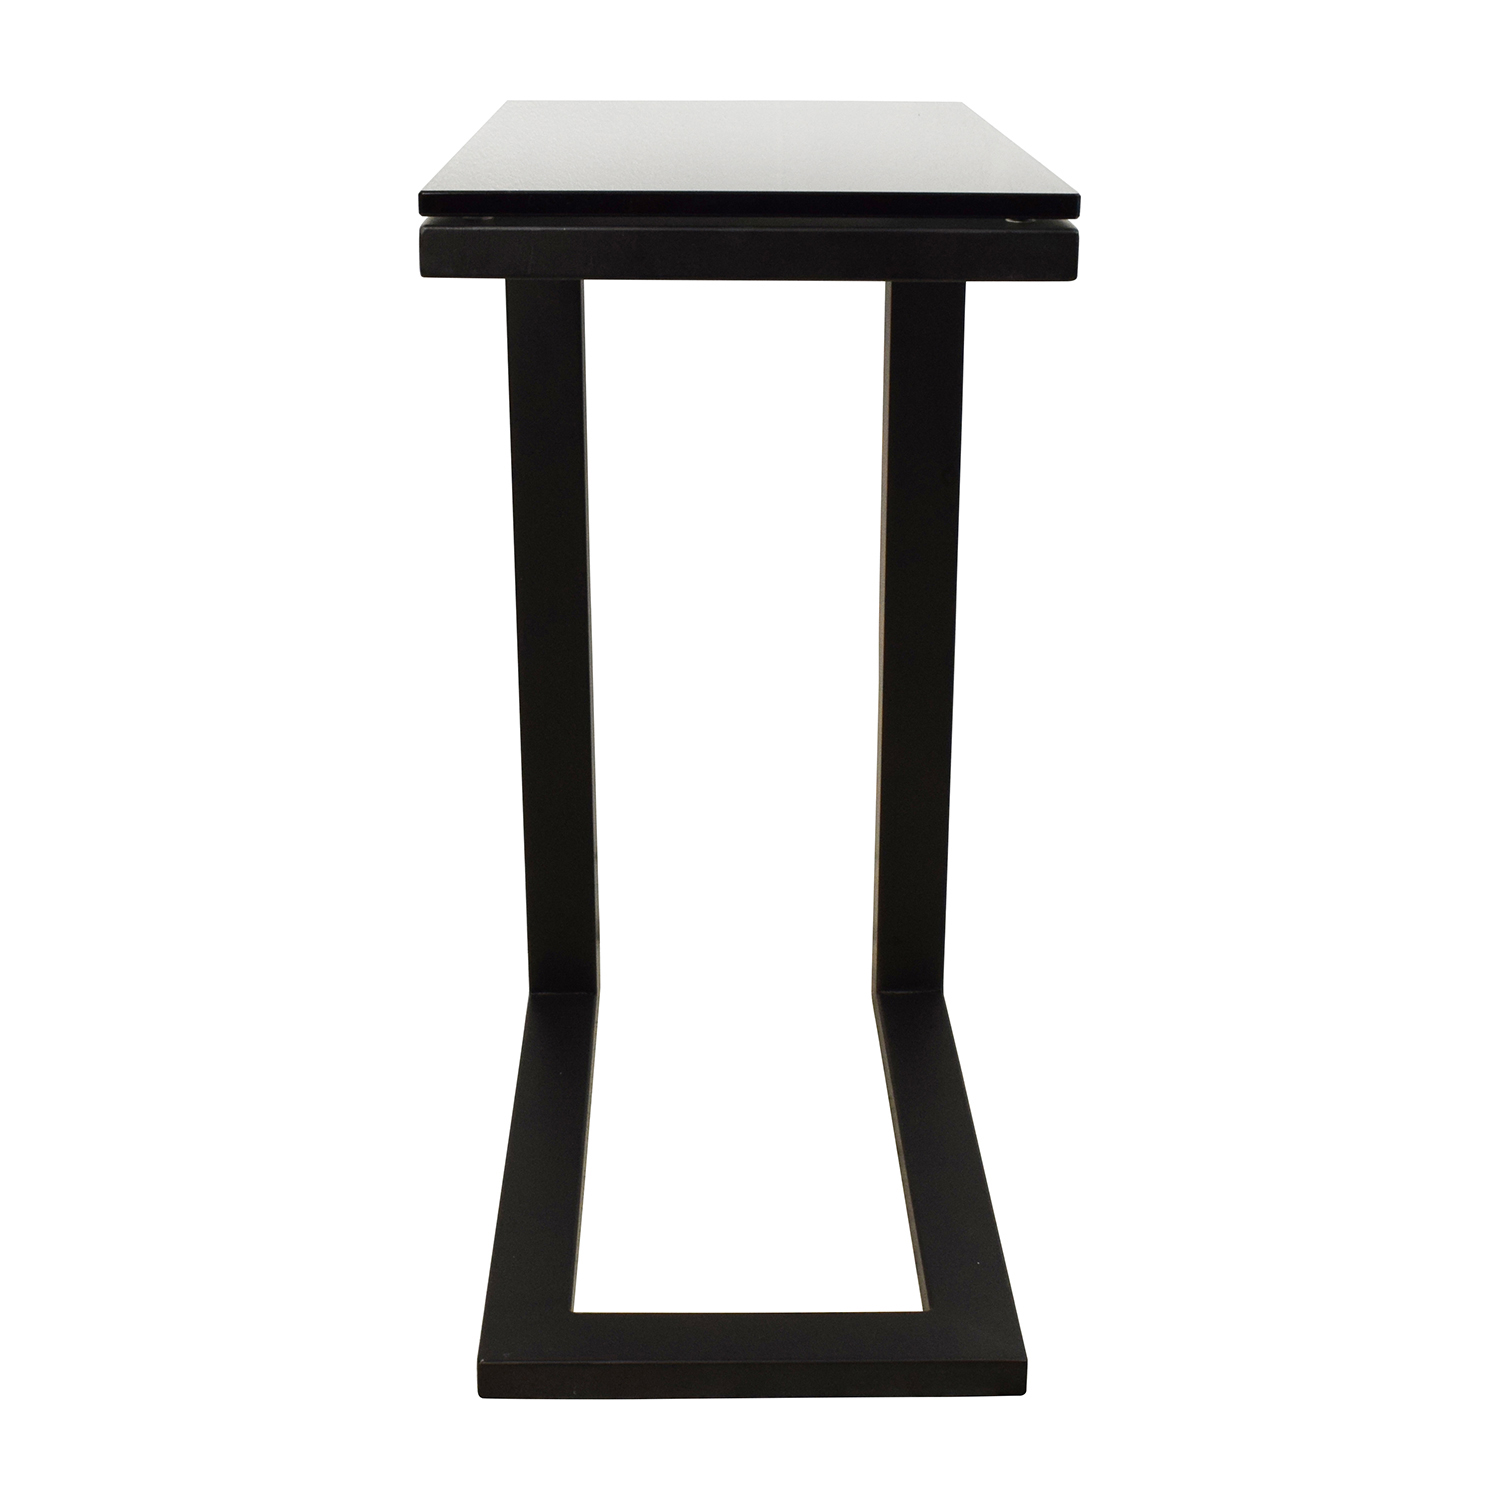 buy Crate and Barrel Crate & Barrel Parsons Glass Top Black Steel Base C Table online